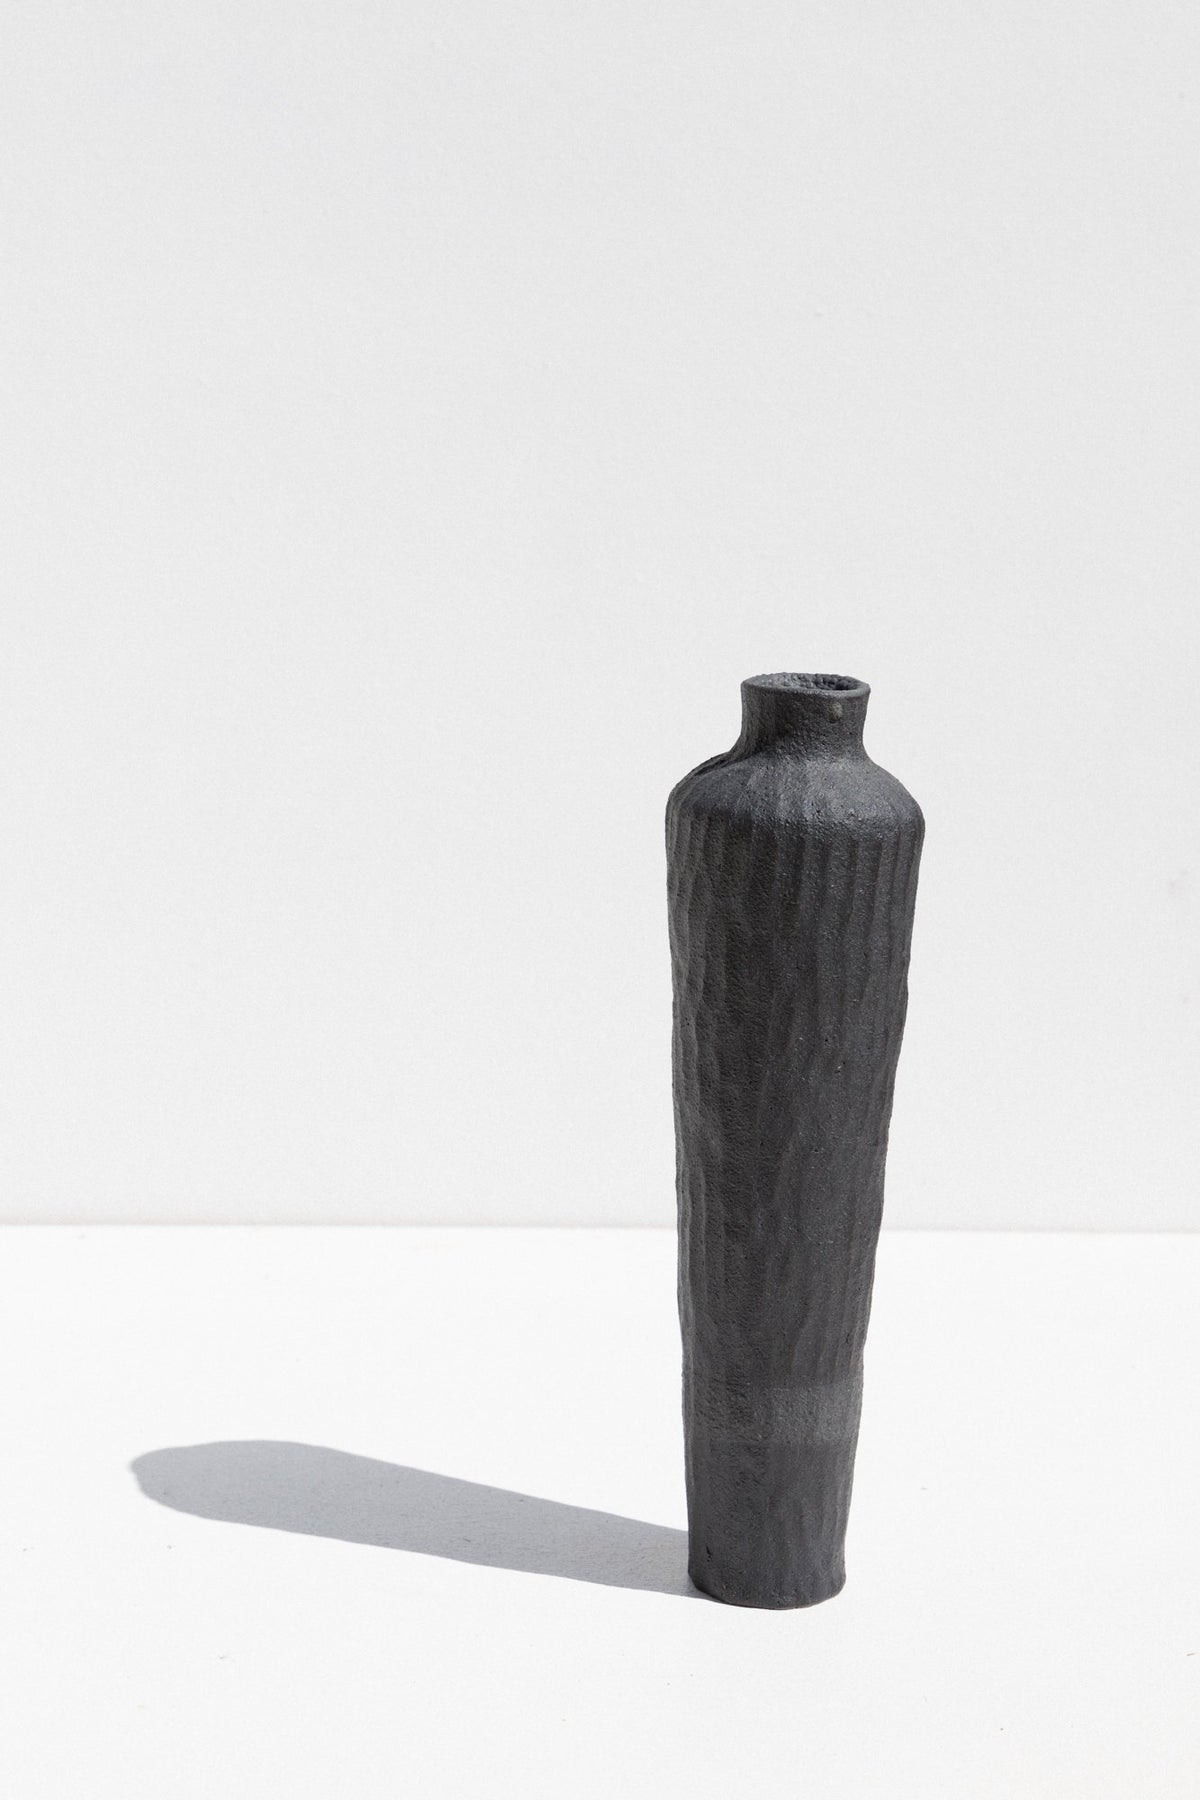 Kerryn Levy Charcoal stoneware Naked Clay Vase in Size Medium Maker's Mrkt Makers Market Melbourne